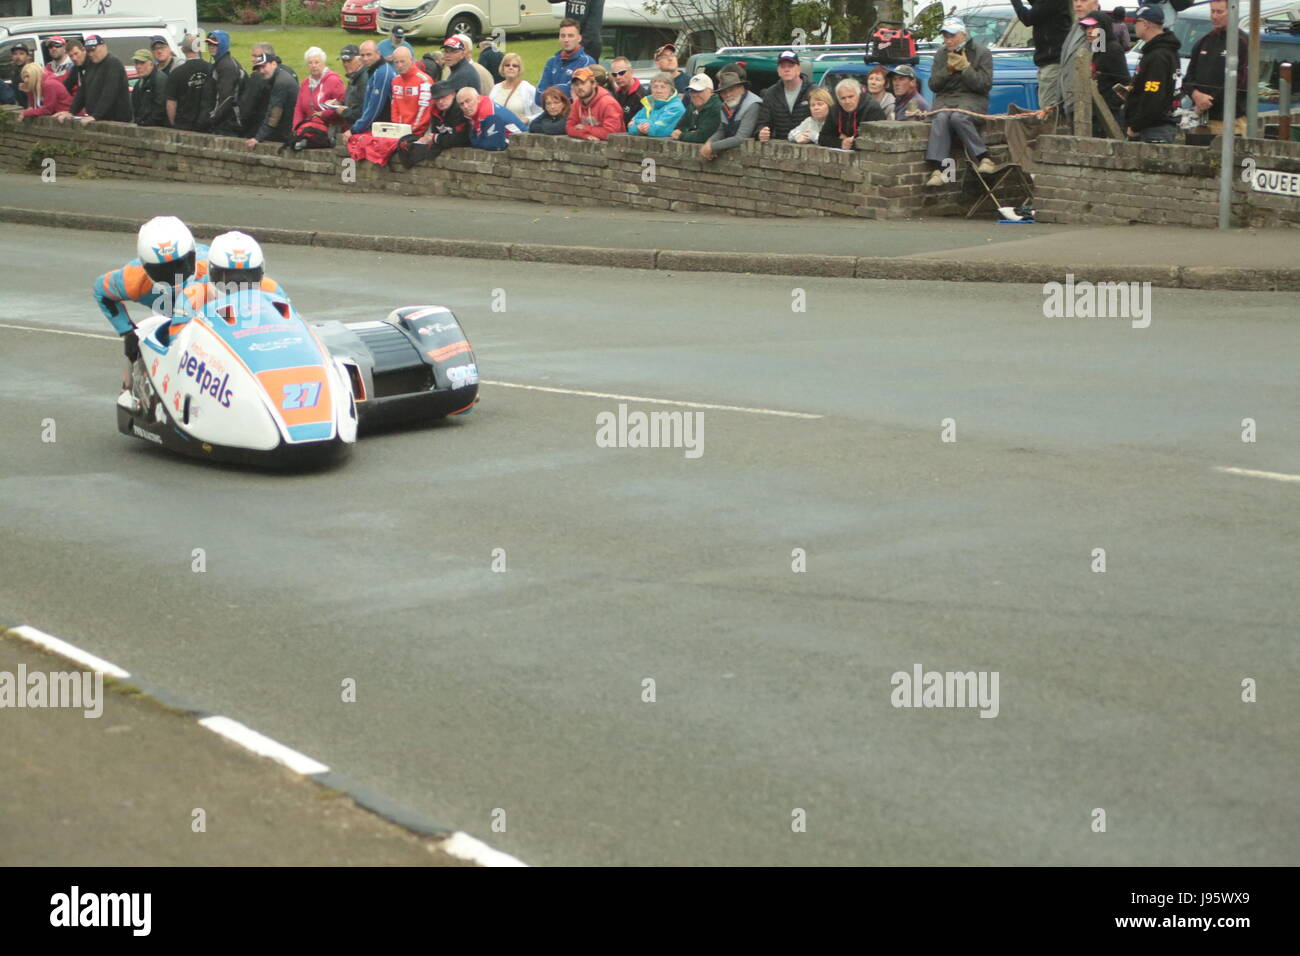 Ramsey, UK. 5th Jun, 2017. Isle of Man TT Races, Sure Sidecar Race. Number 27, Dave Wallis and Scott Hardie on their - Stock Image